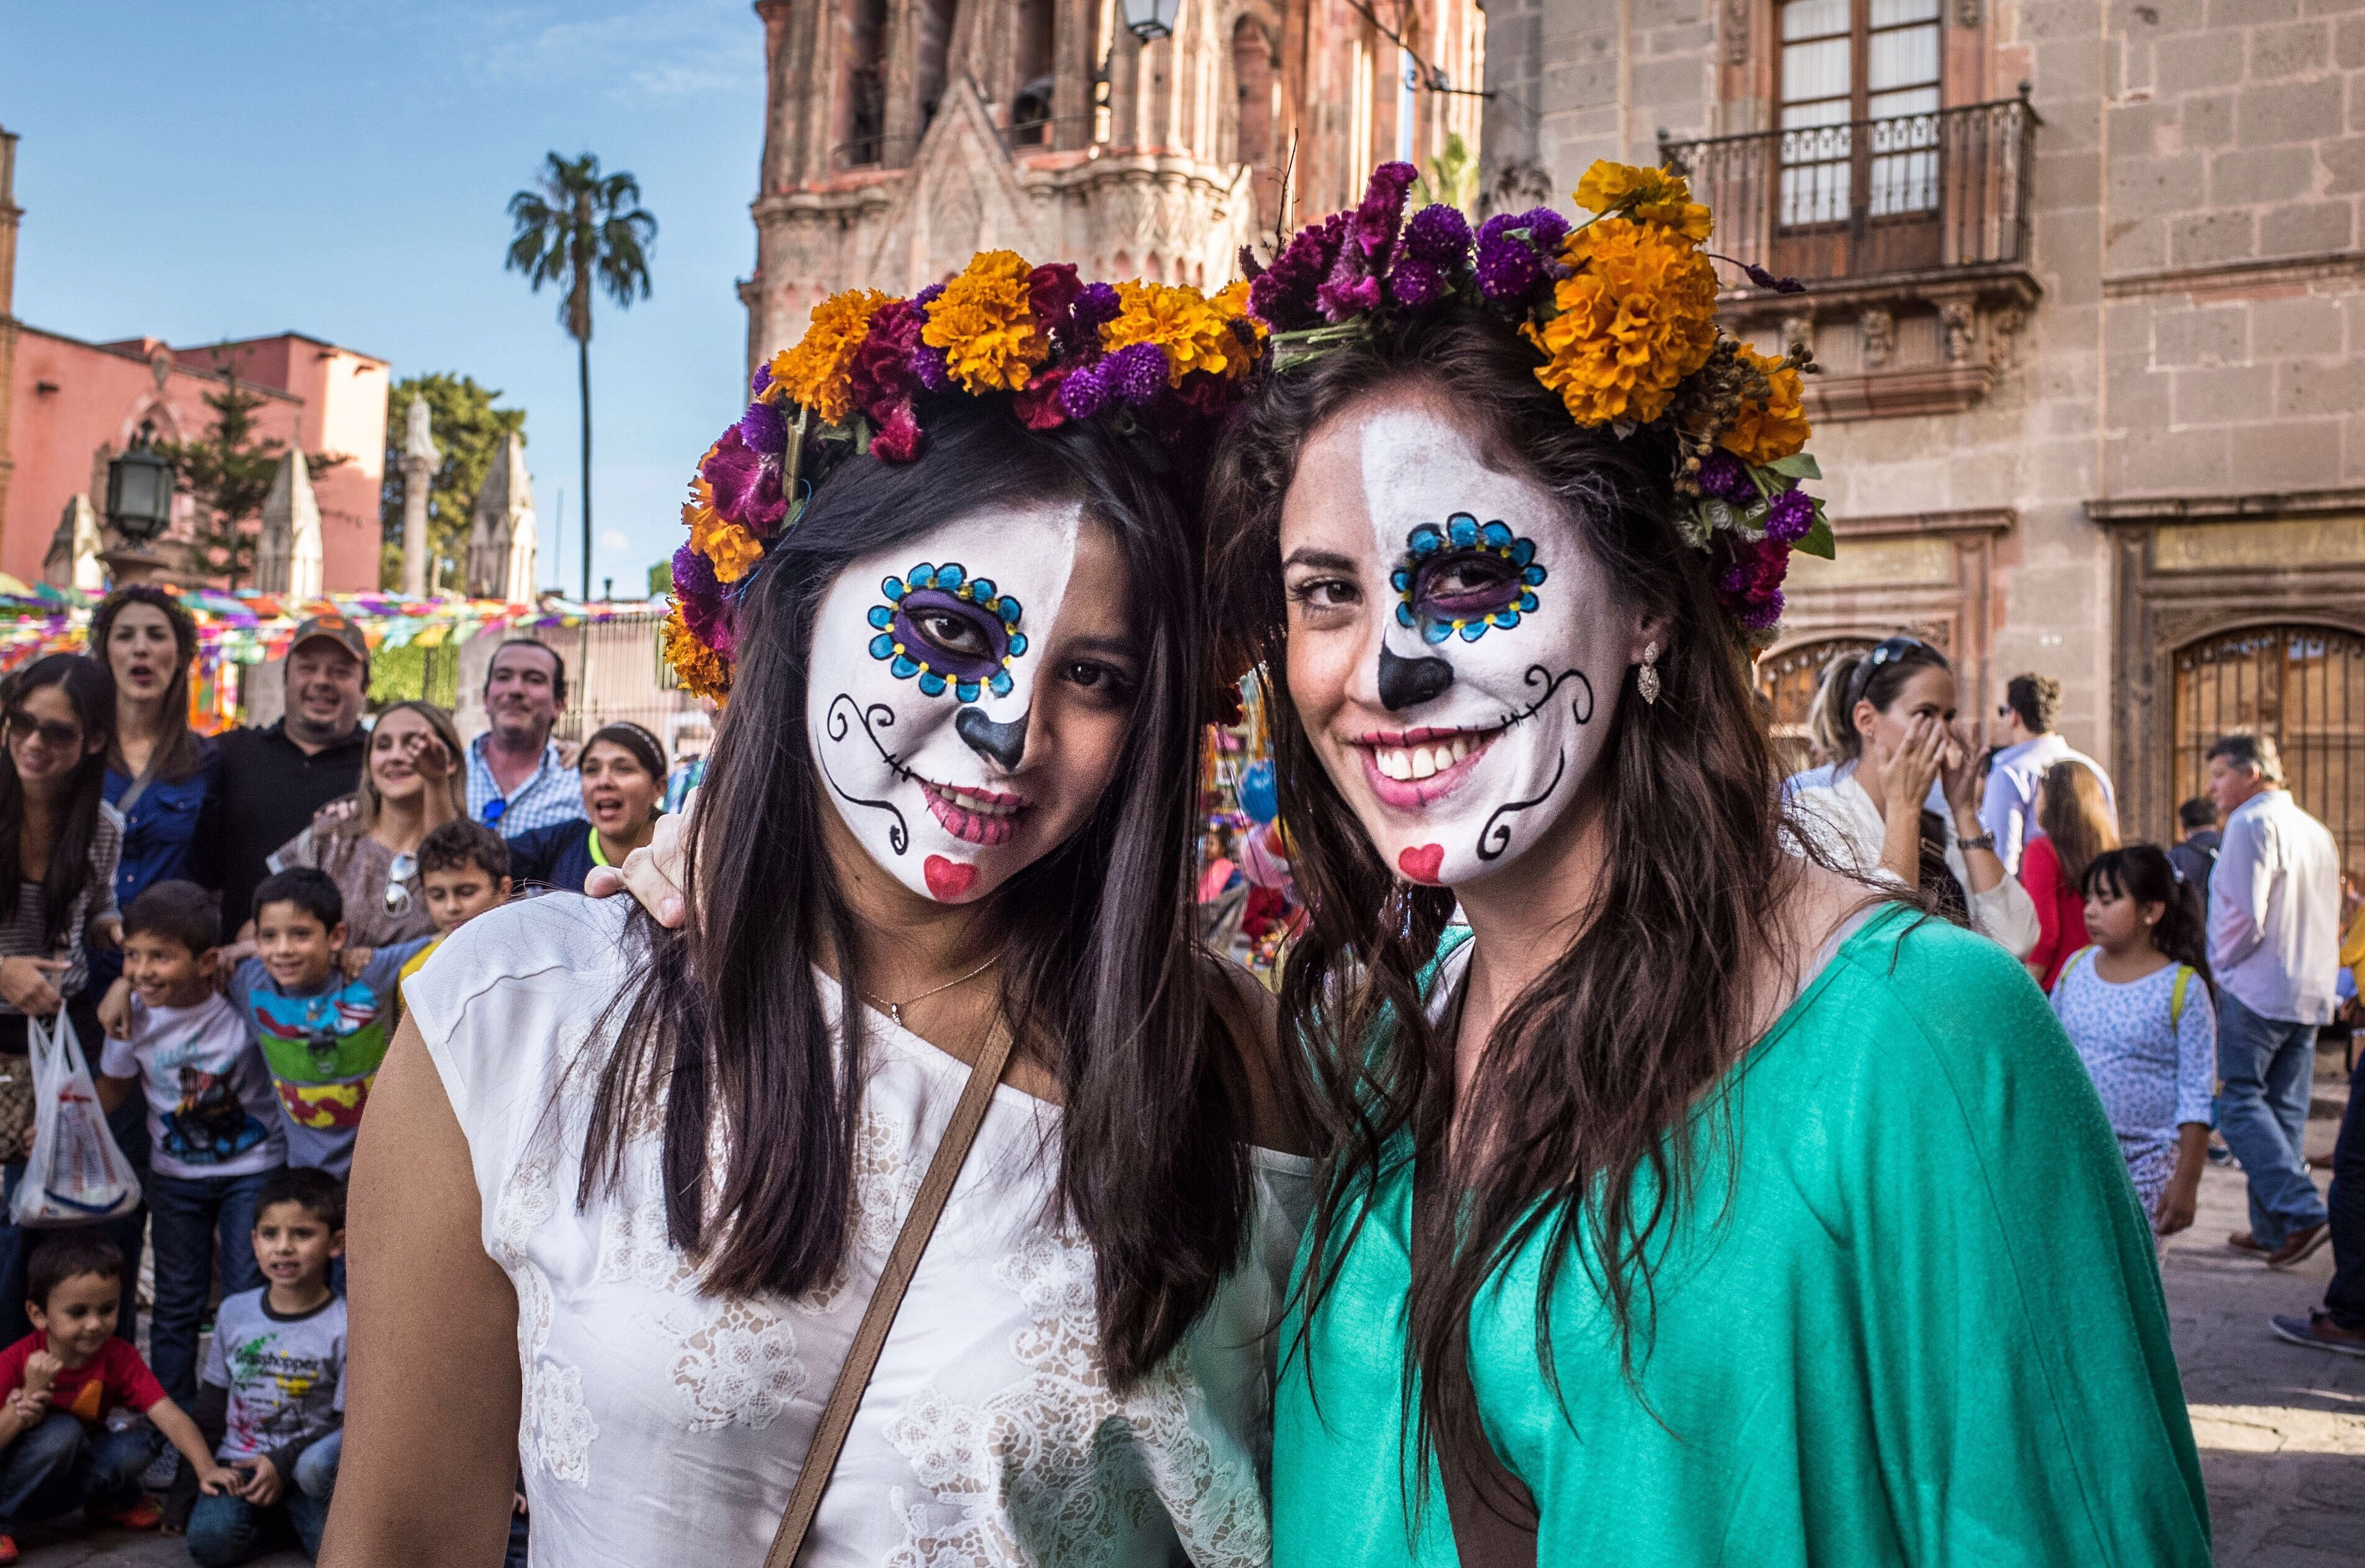 Day of the dead Streetphotography Diademuertos Portrait Traditions Mexico San Miguel De Allende Documentary Documentary Photography Streetphoto Costume Catrina Dayofthedead